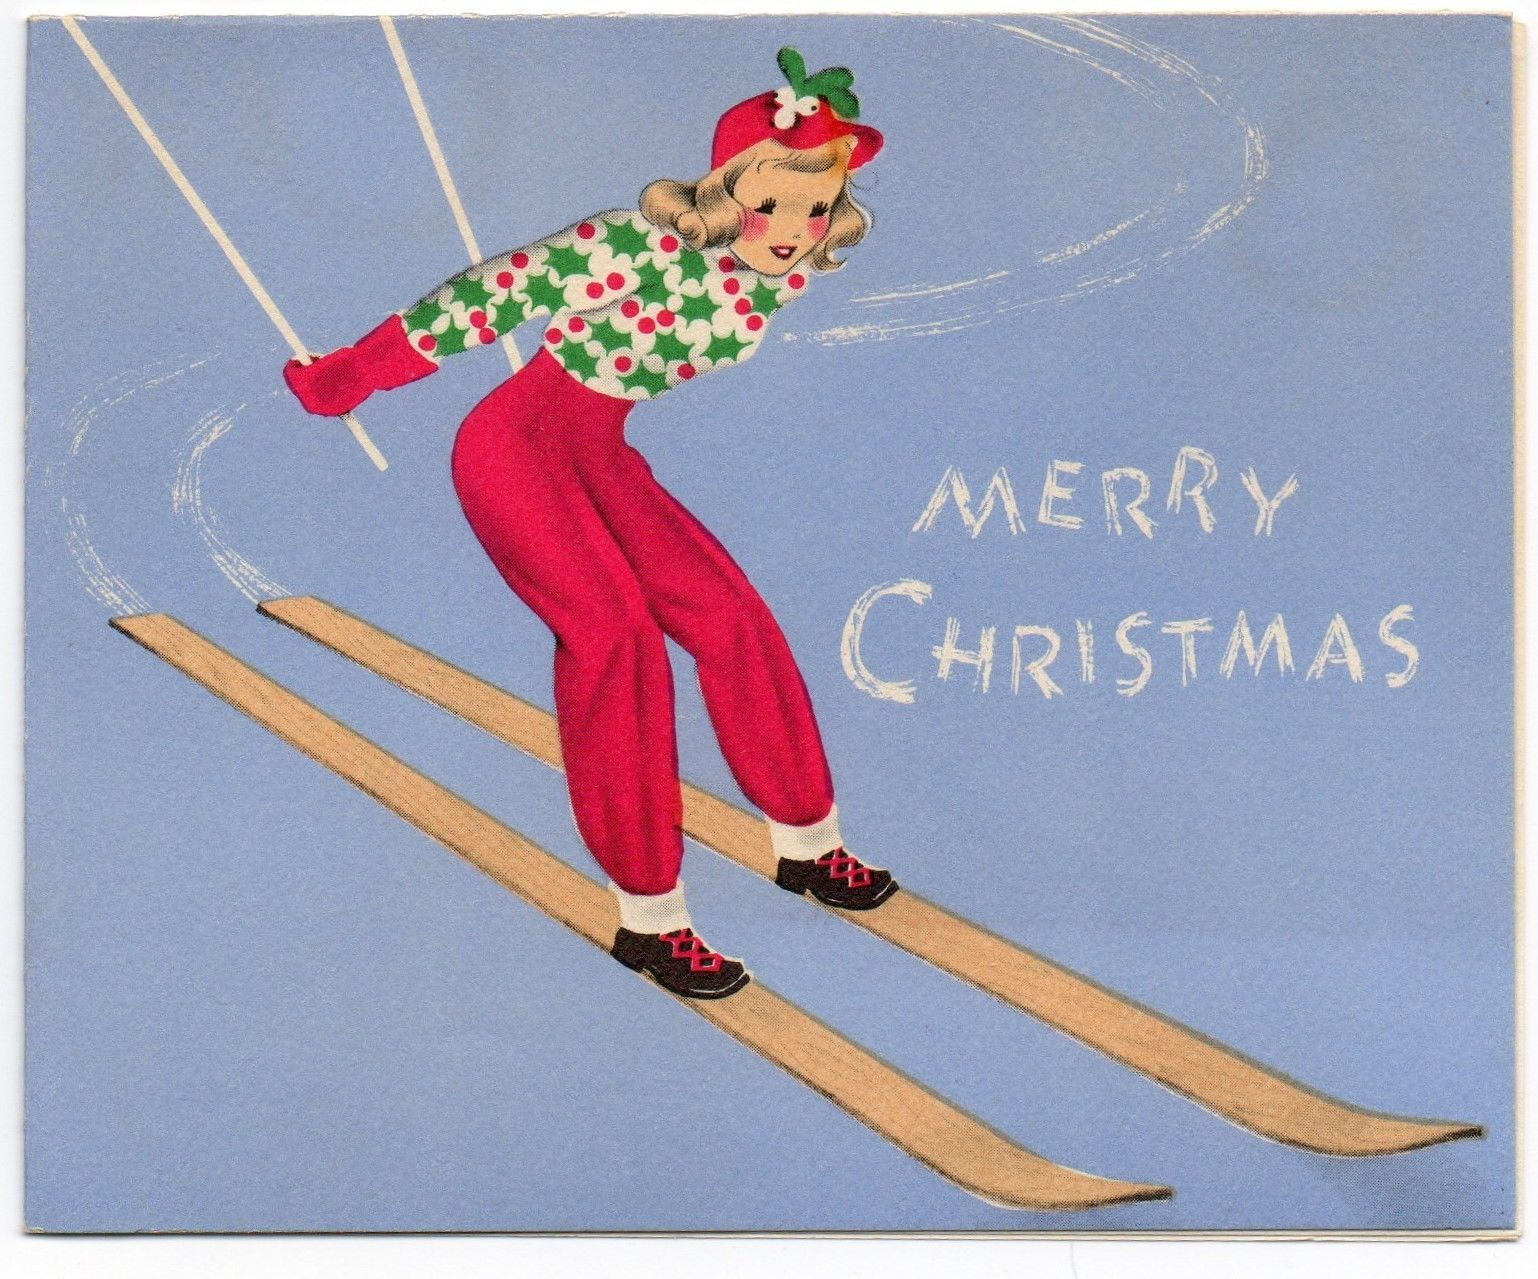 Vtg Norcross Christmas New Year Card~Woman Skiing Skis~Holly Sweater Mistletoe FOR SALE • $5.99 • See Photos! Money Back Guarantee. Vintage Christmas & New Year greeting card shows a pretty woman skiing in red pants, a sweater with holly, and a hat with mistletoeThe card is used and has a 371743216747